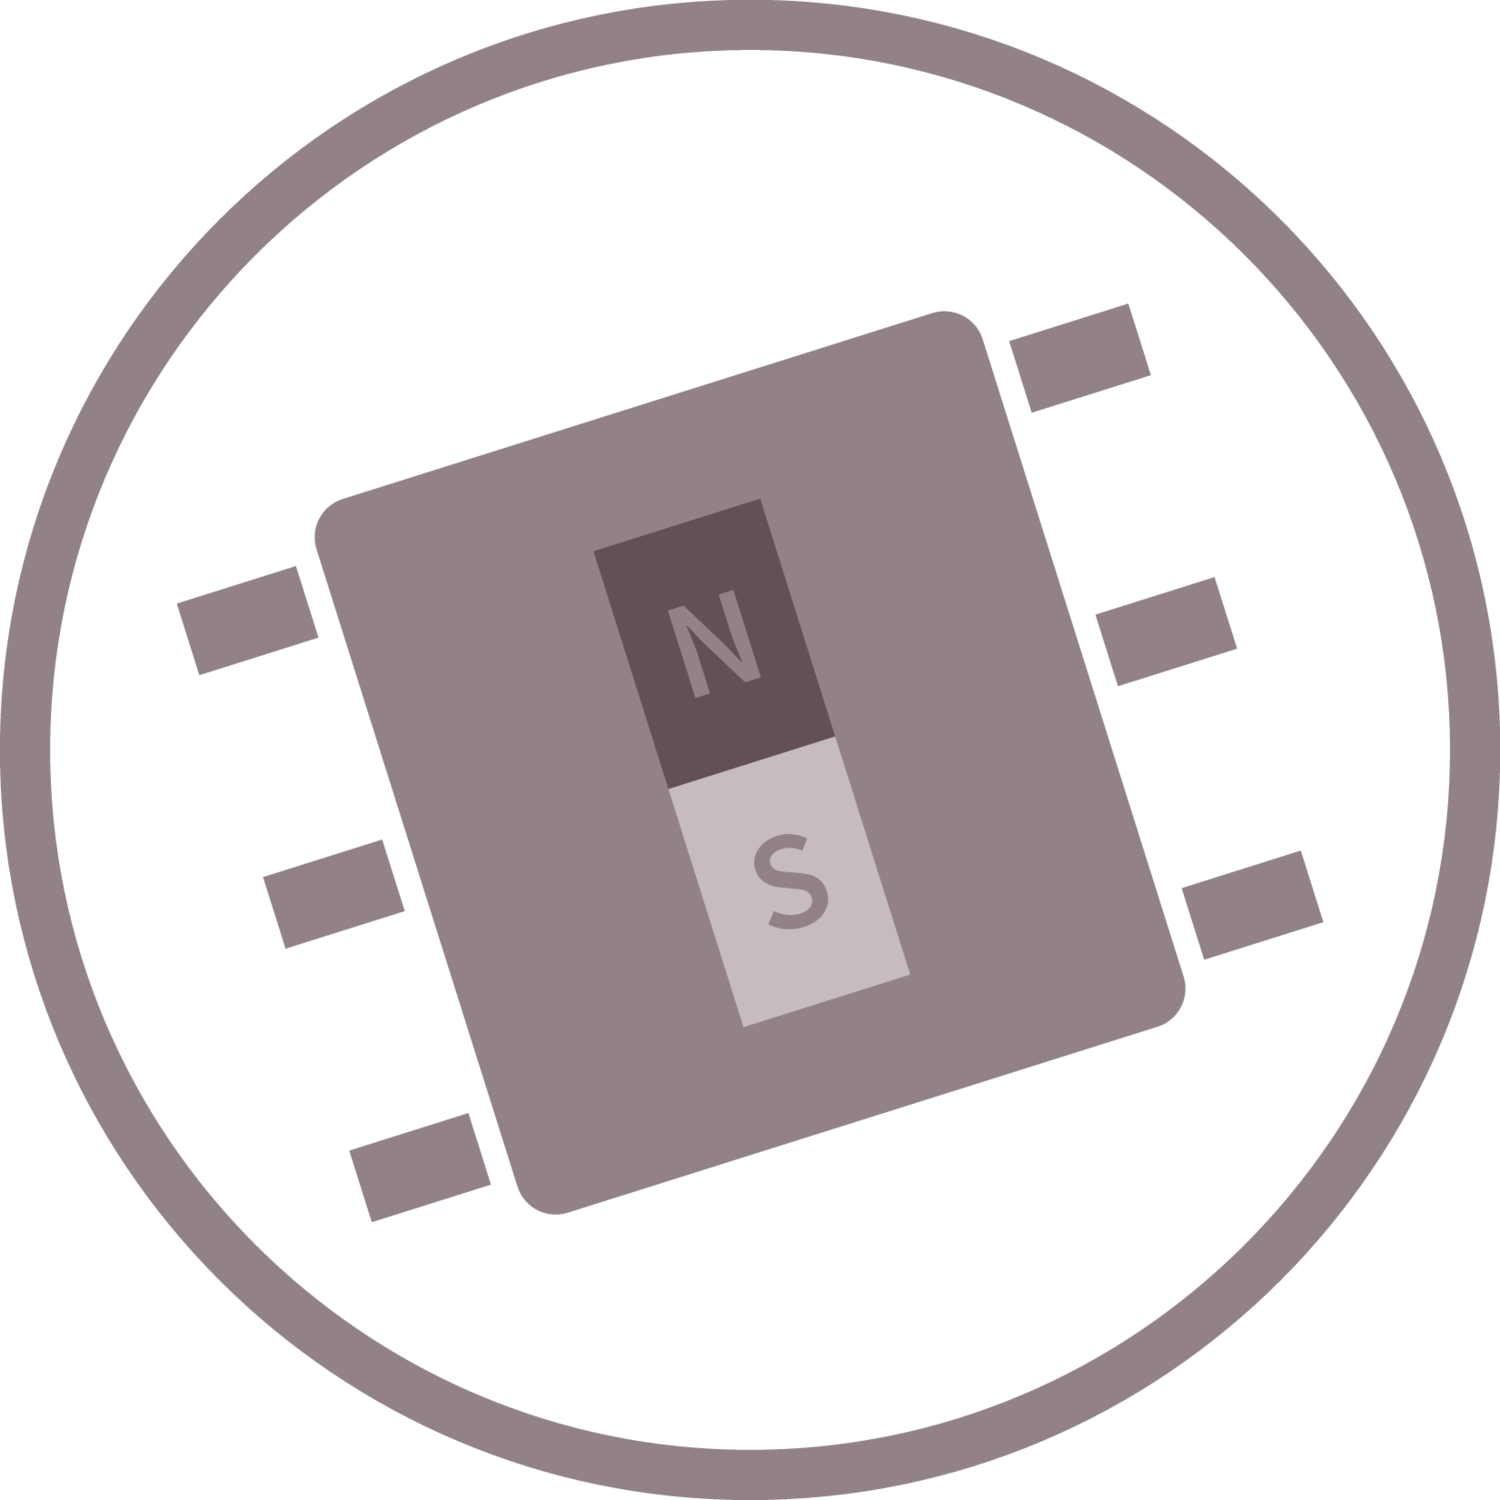 lowres-INFIN_Icon_Magnetic_Sensor_02.eps.png